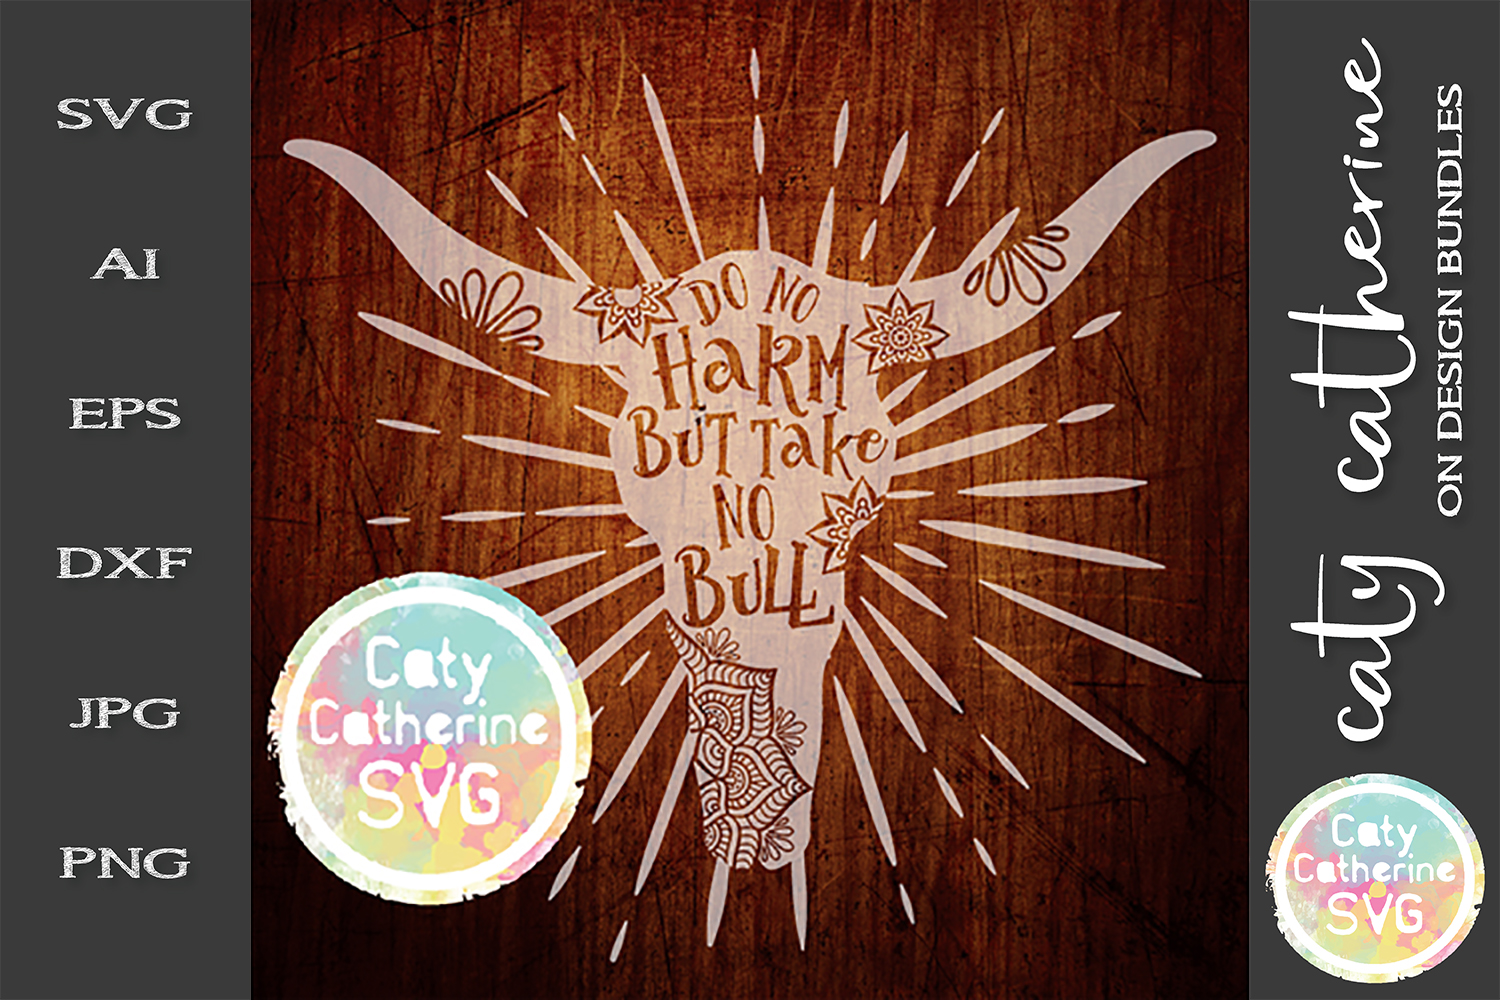 Do No Harm But Take No Bull SVG Cut File example image 1